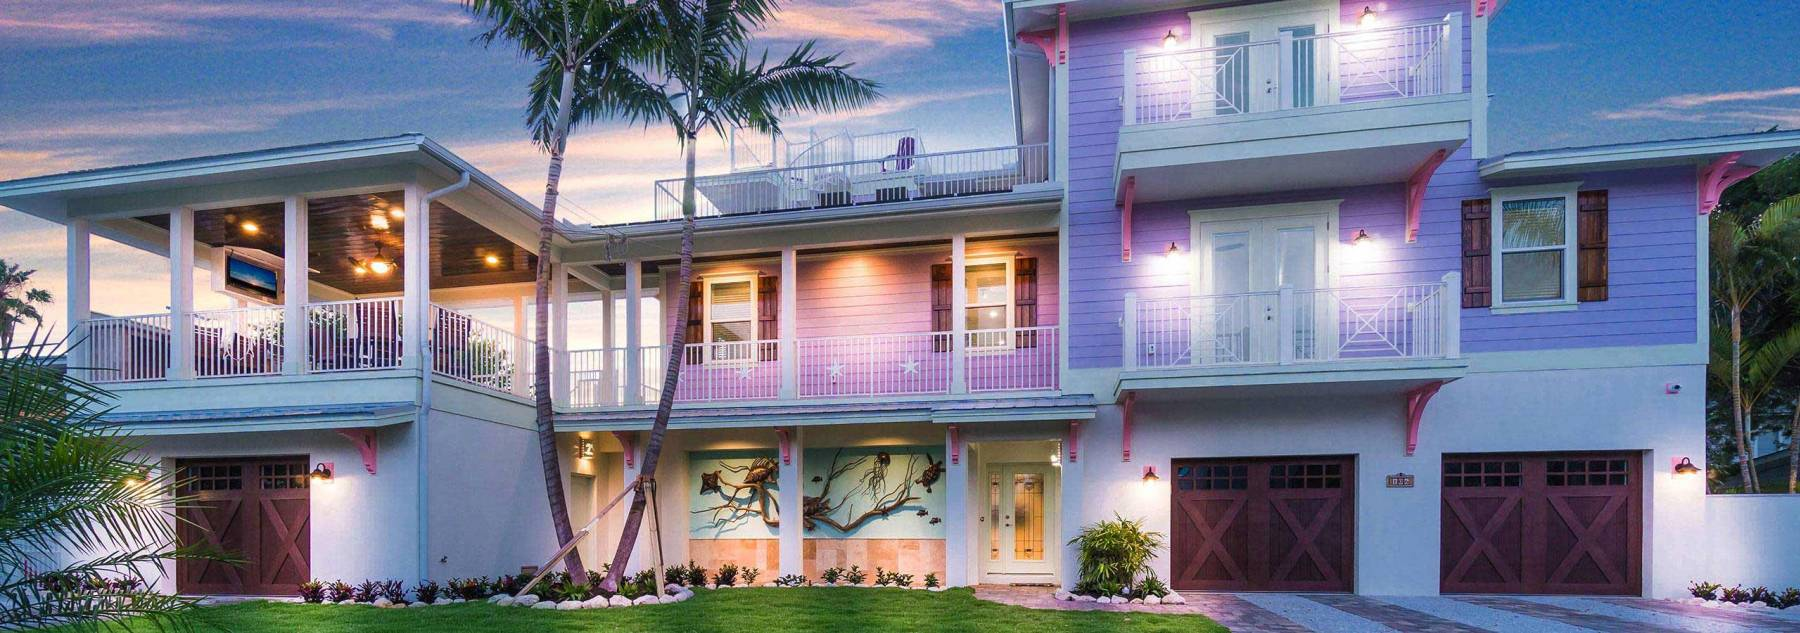 Holmes Beach Vacation Rental with short walk to the beach